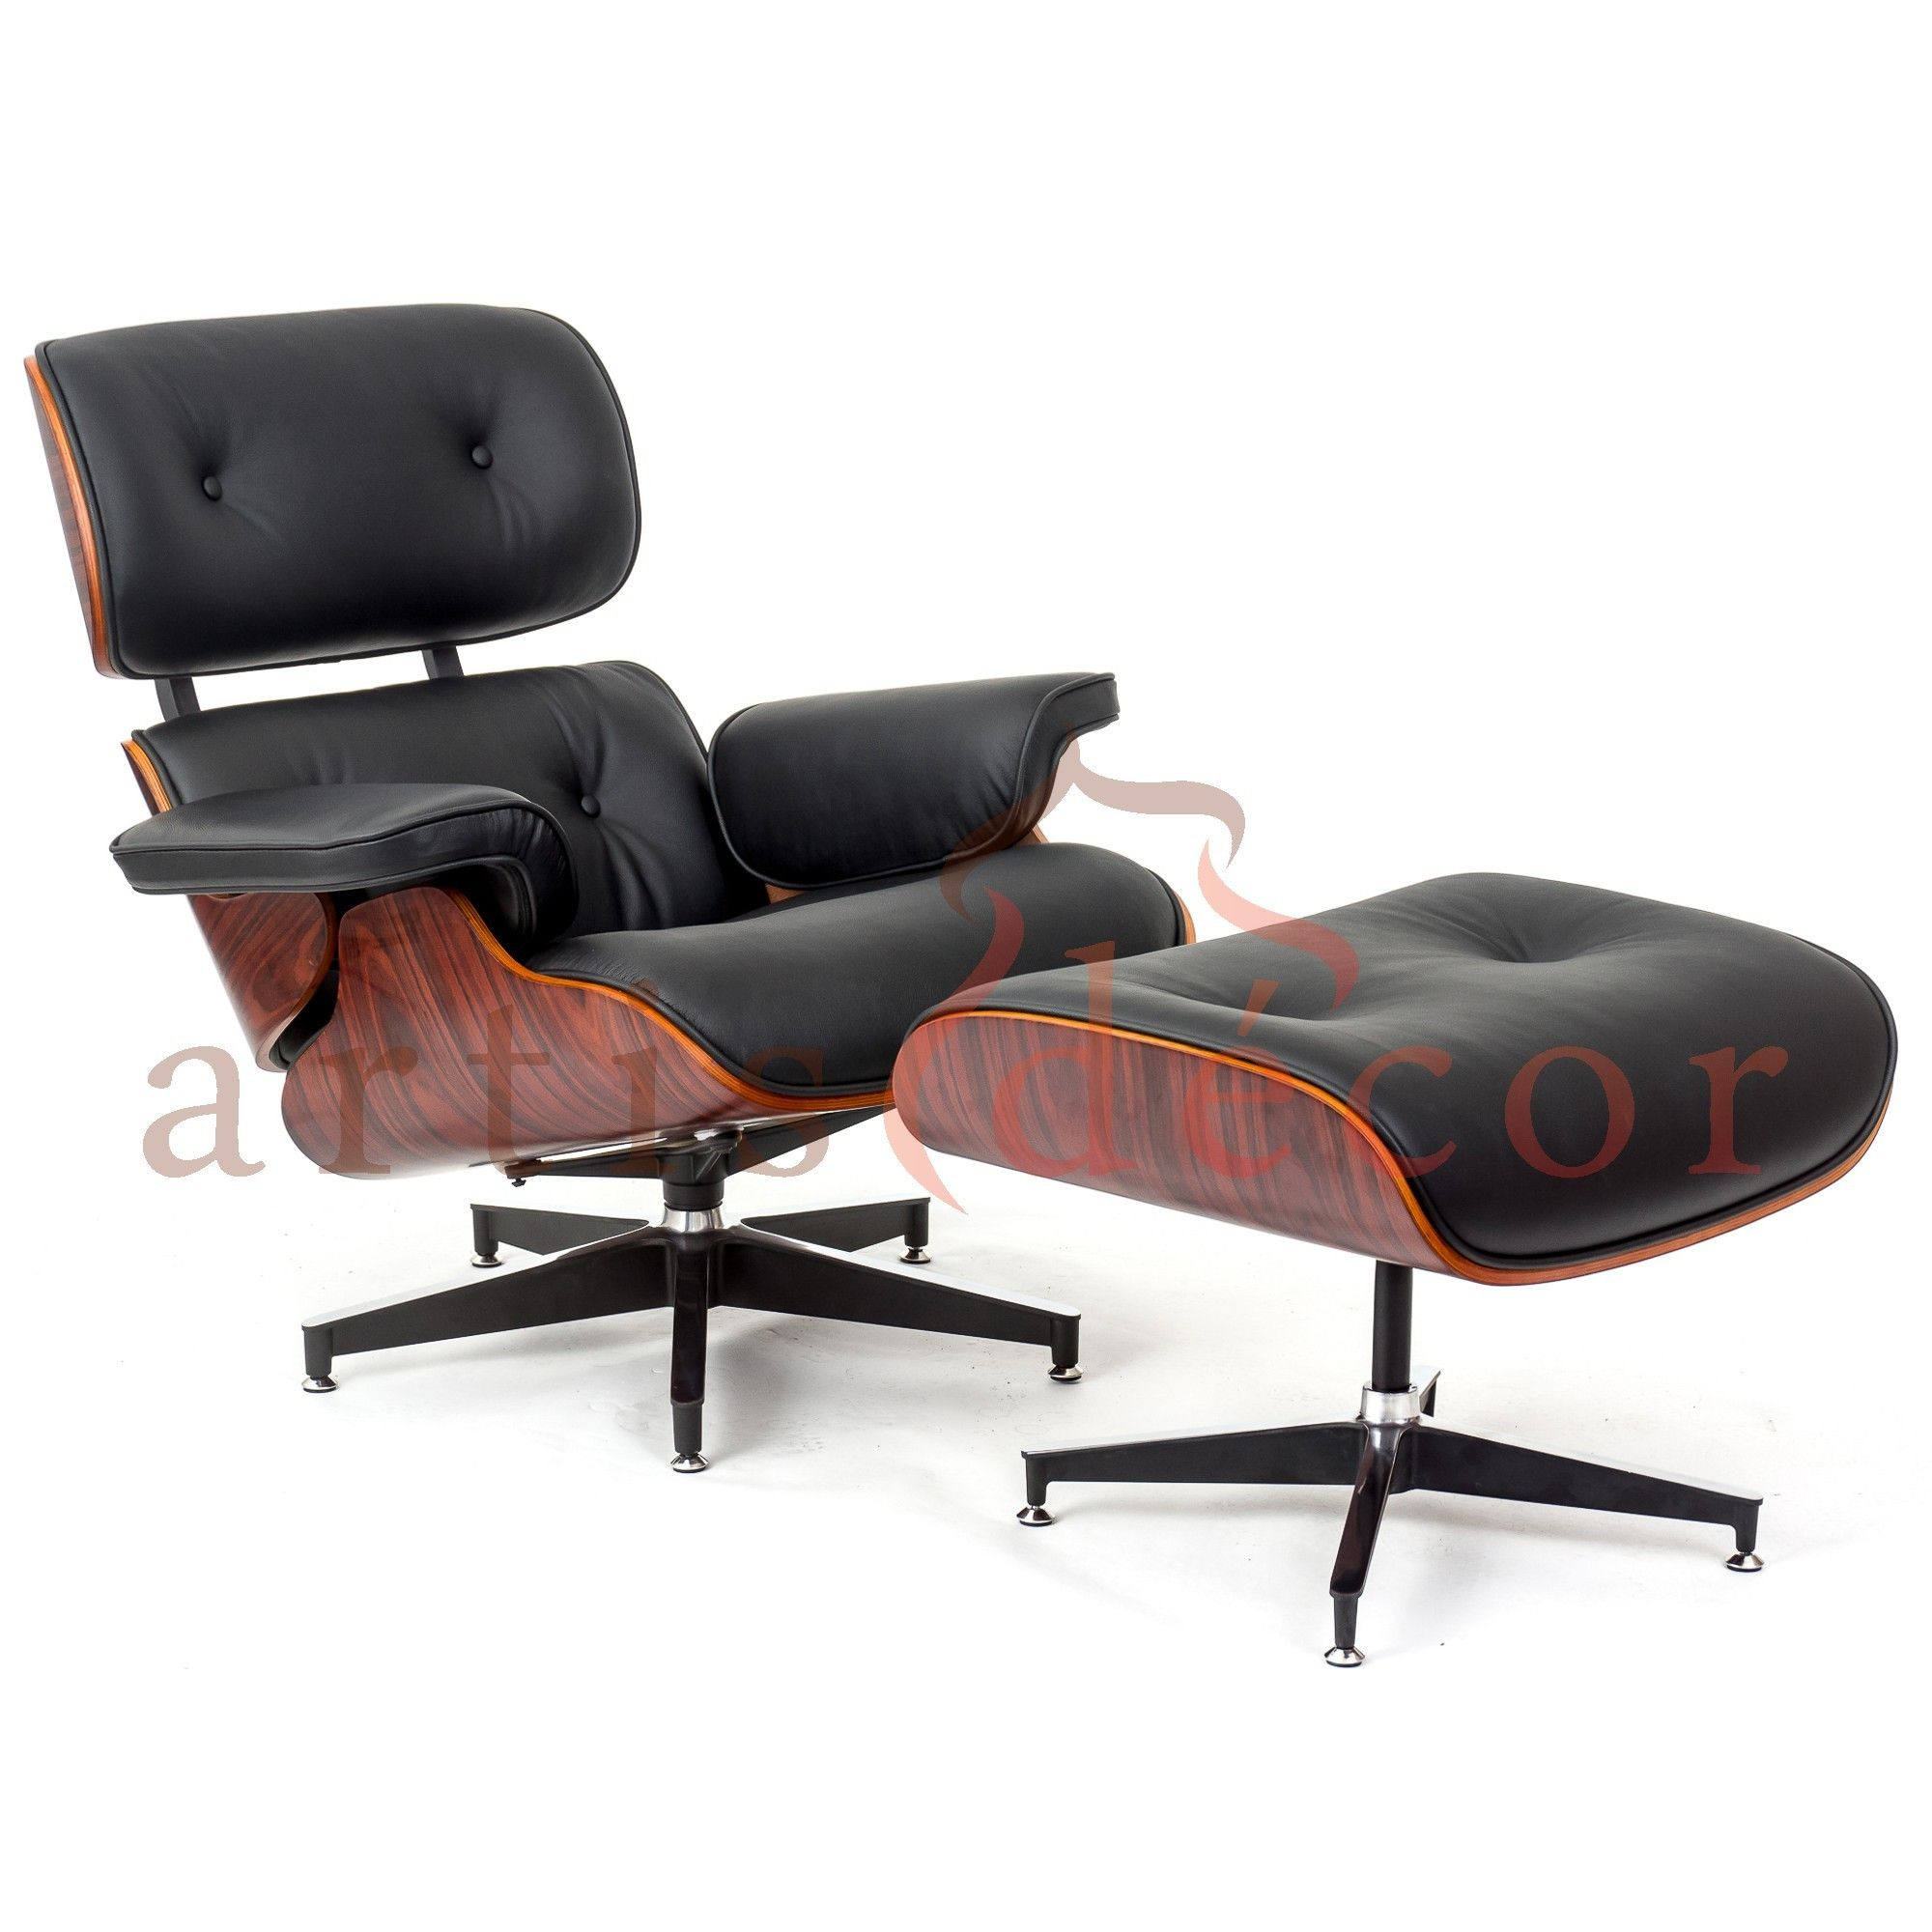 Rosewood Lounge Chair And Ottoman Black Leather Replica Artis